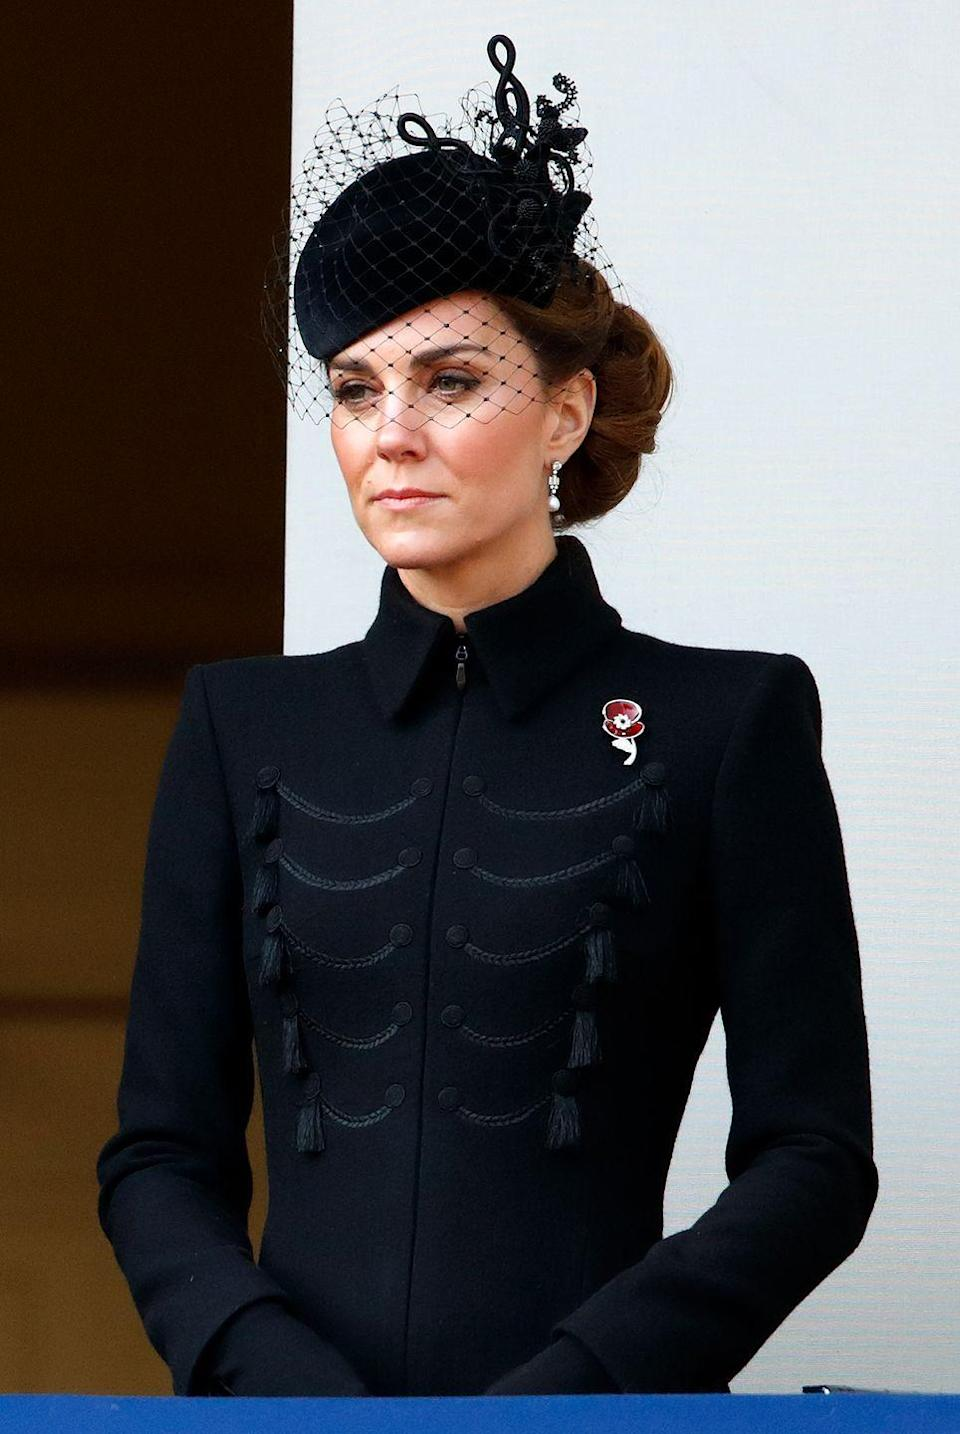 """<p>The Duchess of Cambridge attends the annual Remembrance Sunday service at The Cenotaph. She wore a coat dress by <a href=""""https://www.alexandermcqueen.com/us"""" rel=""""nofollow noopener"""" target=""""_blank"""" data-ylk=""""slk:Alexander McQueen"""" class=""""link rapid-noclick-resp"""">Alexander McQueen</a>. </p>"""